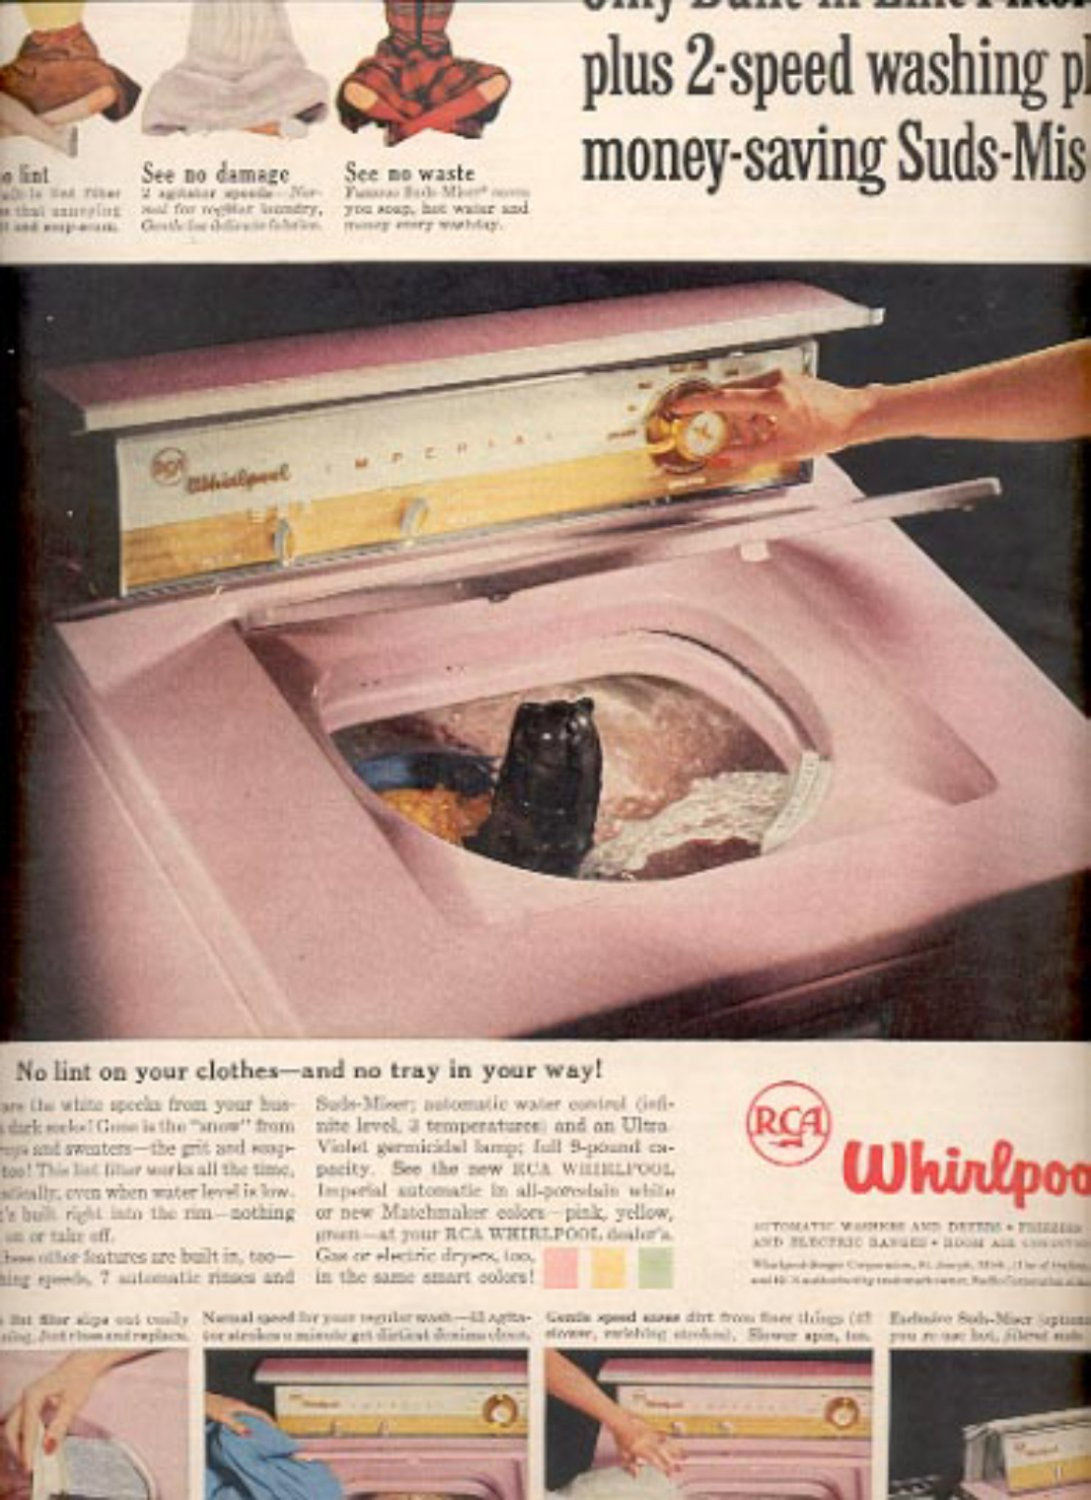 1957  RCA Whirlpool Washer  ad (# 4943)